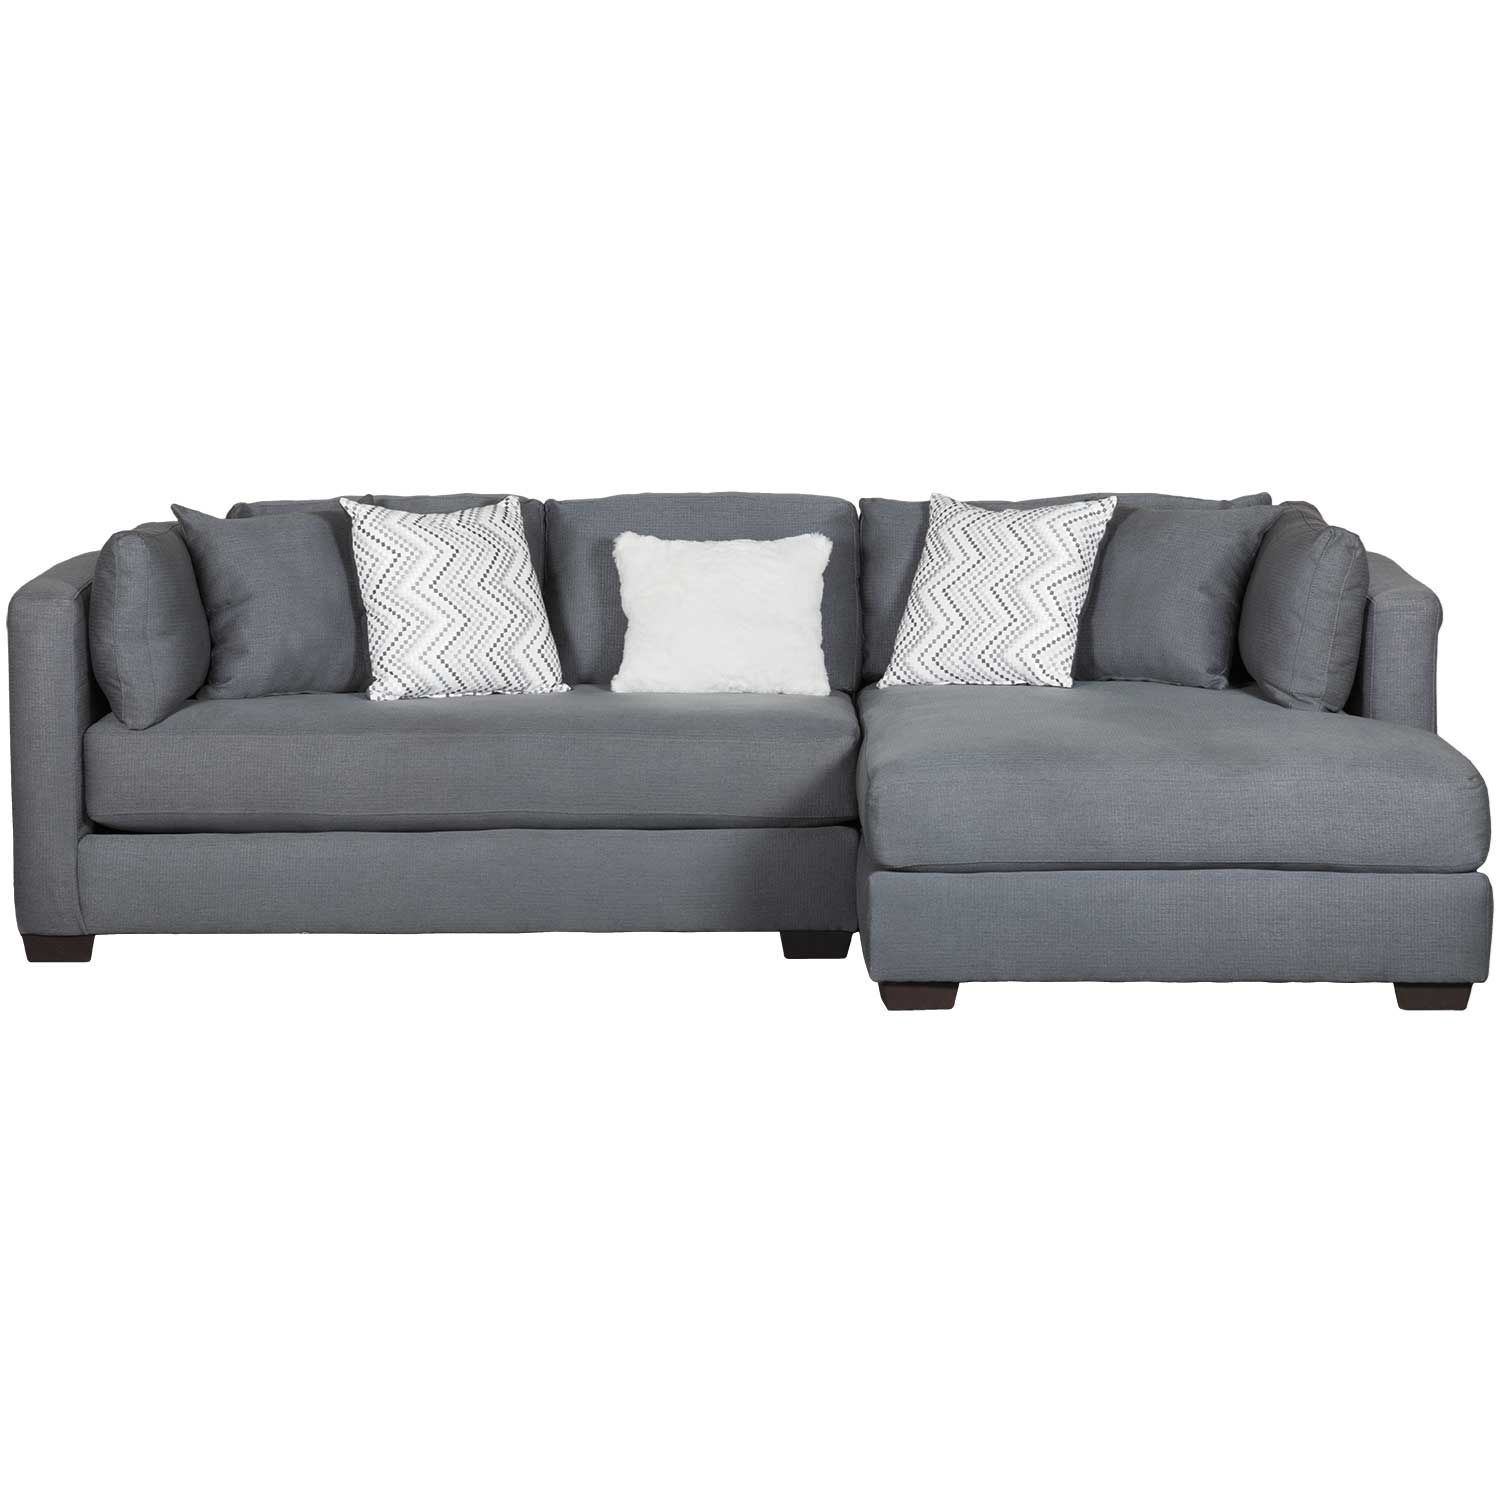 Parker 2 Piece With Raf Chaise Sectional 55105518 American